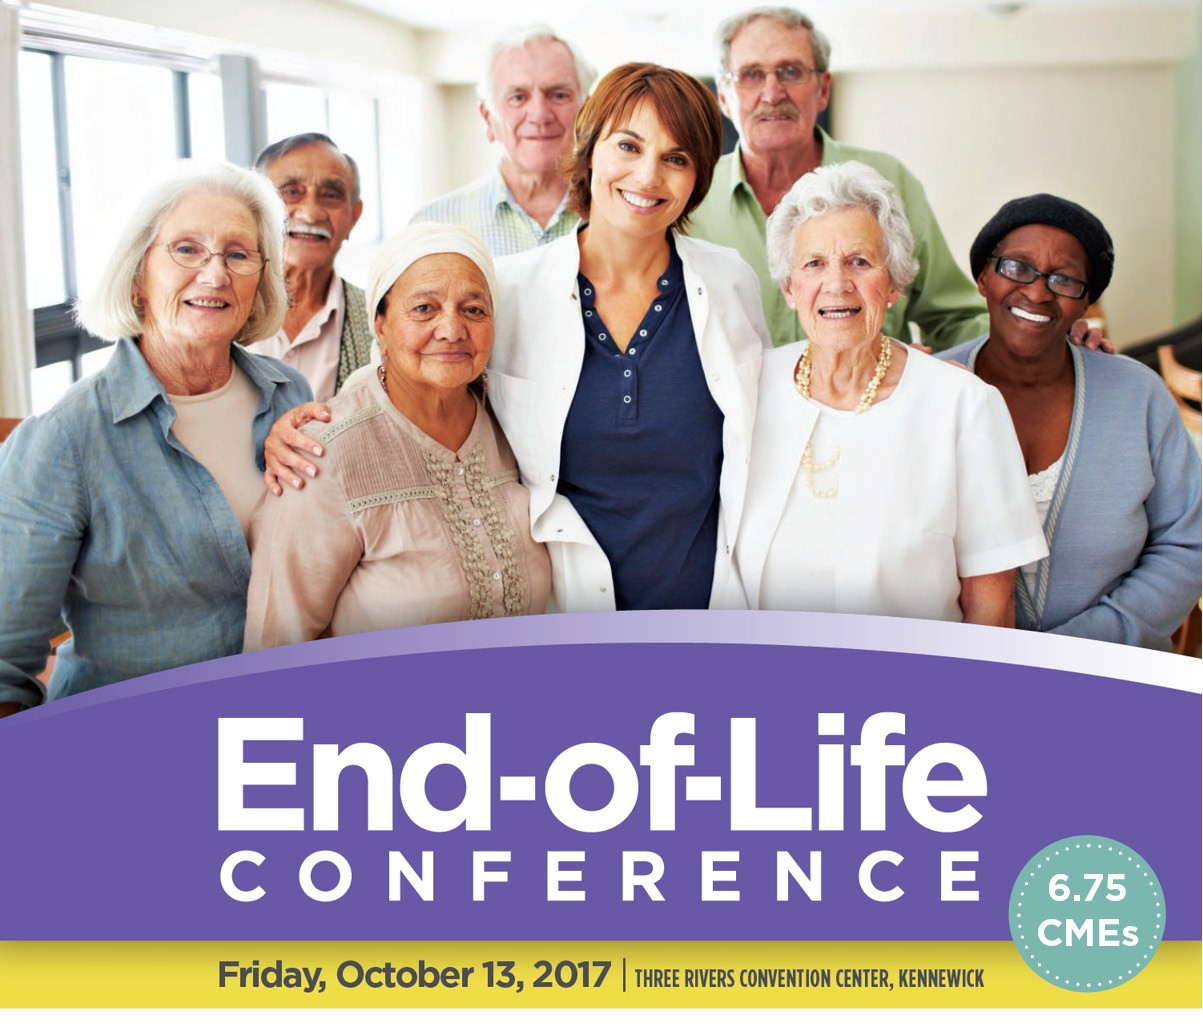 End-of-Life Conference